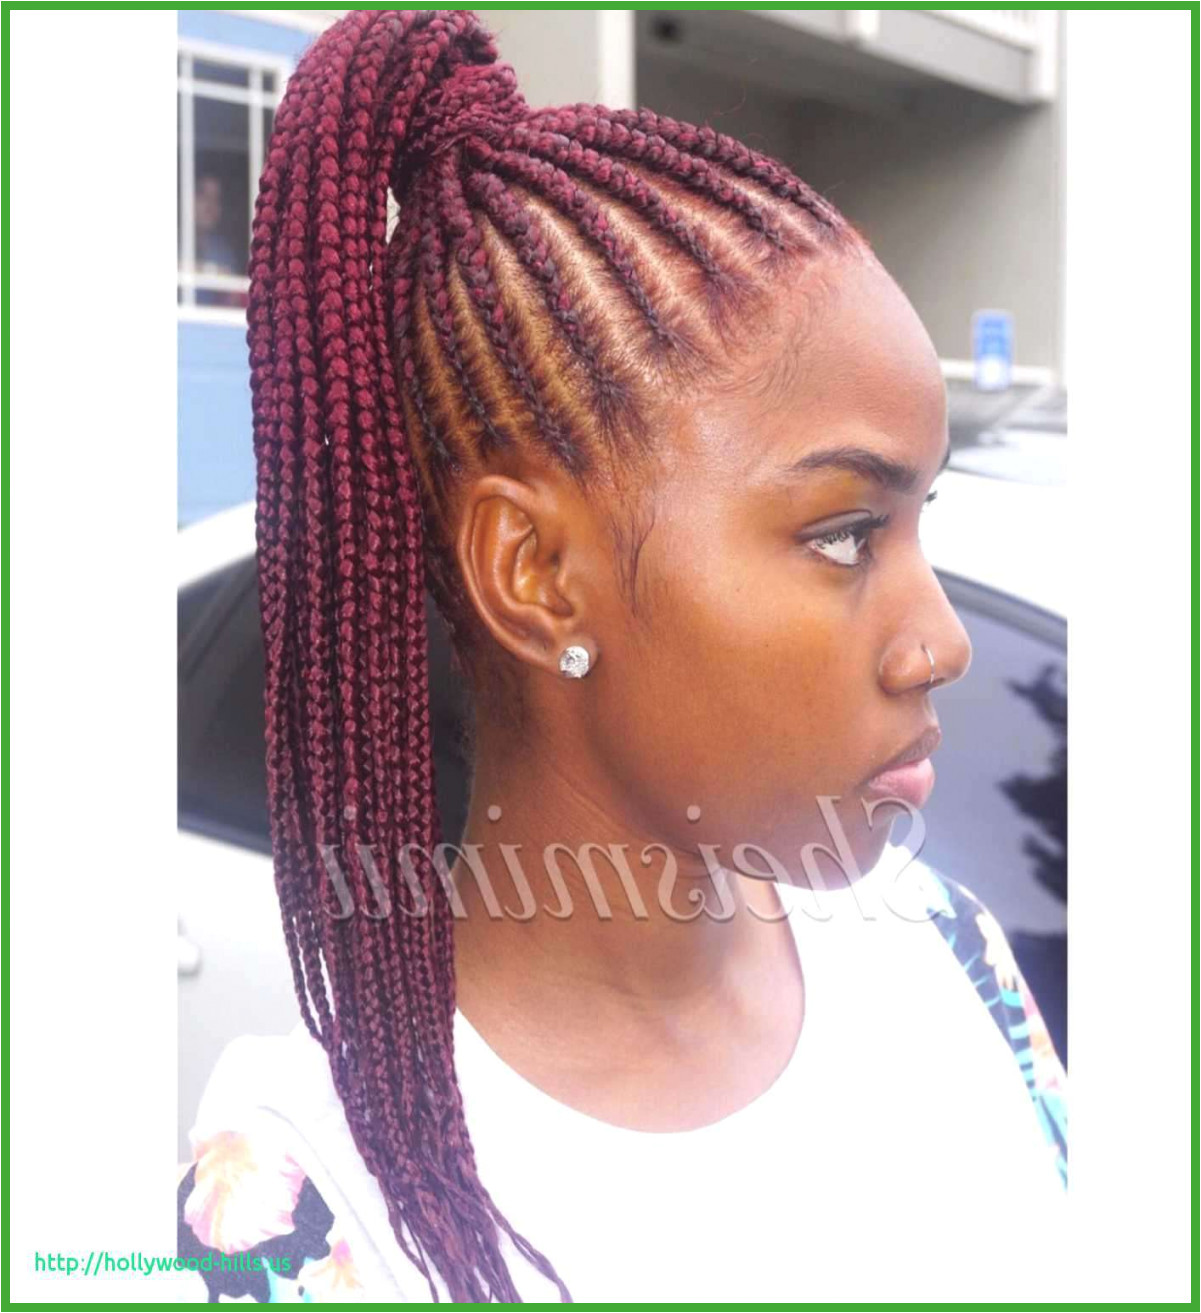 Hairstyles For Locs Hairstyles With Dreadlocks New Dread Frisuren 0d Extraordinary Dreadlock Styles For Men